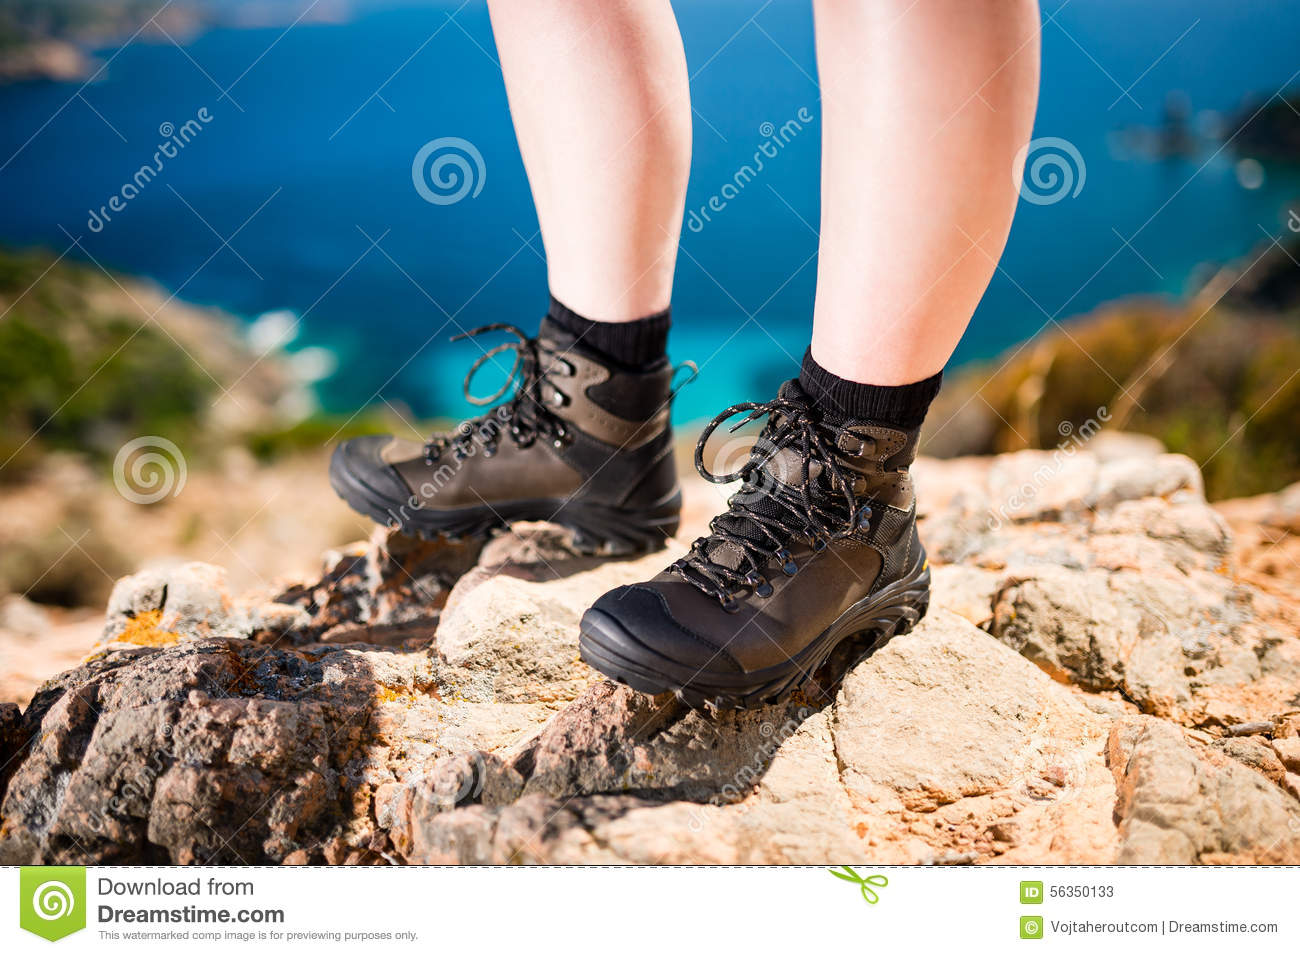 Detail of women legs in brown leather trekking shoes standing on rock